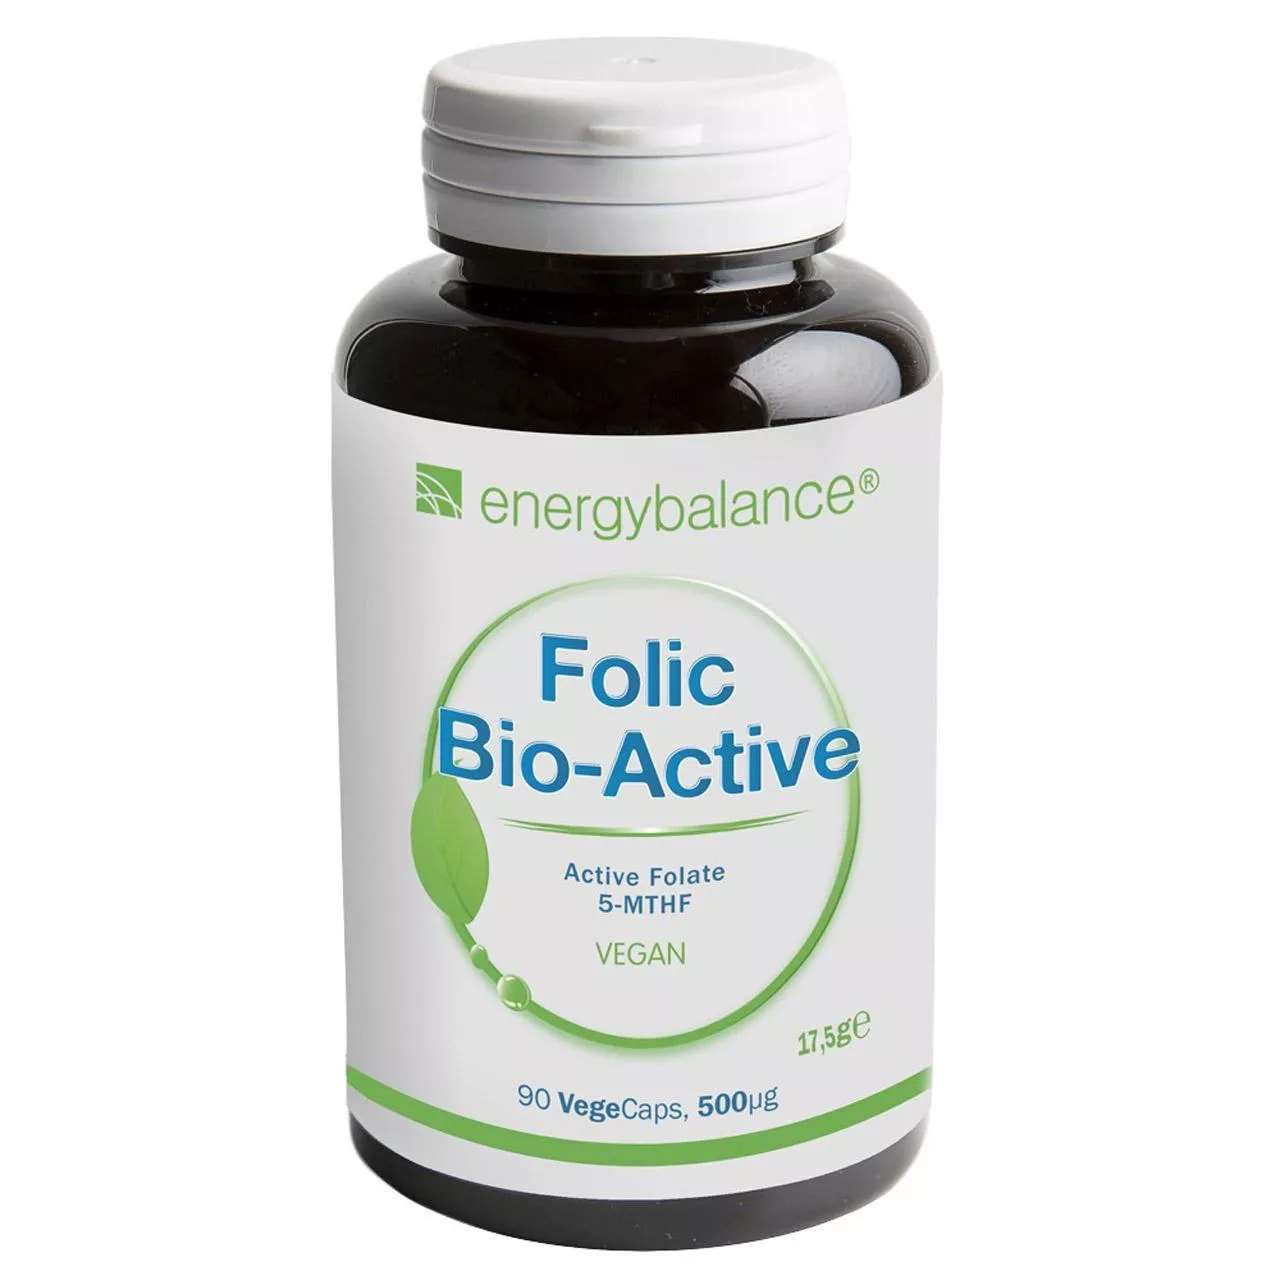 Folic Bio-Active 5-MTHF, 90 VegeCaps